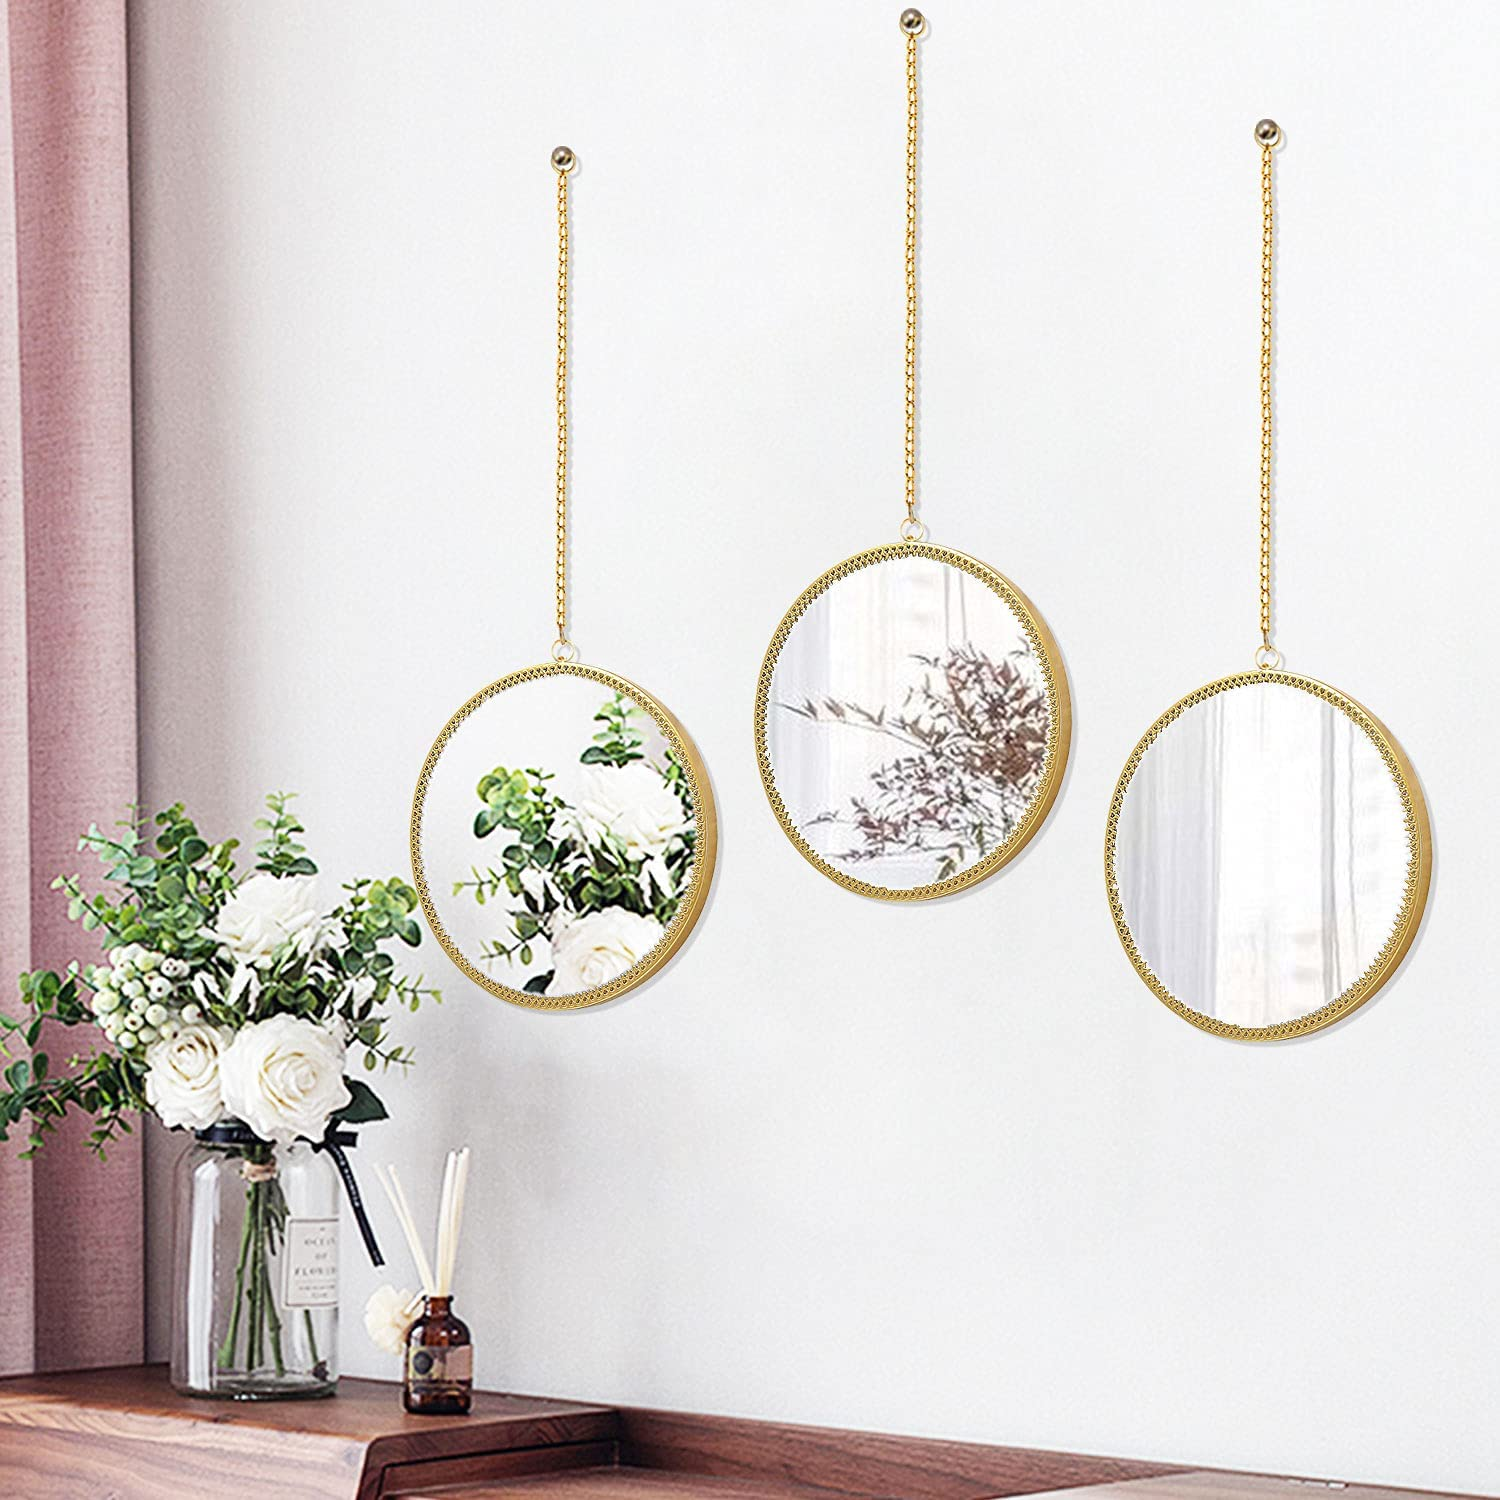 3 Pack Round Mirror Wall Decor Gold Metal Wall Mirrors with Flora Border, Hanging Chain Home Decorative Wall Art